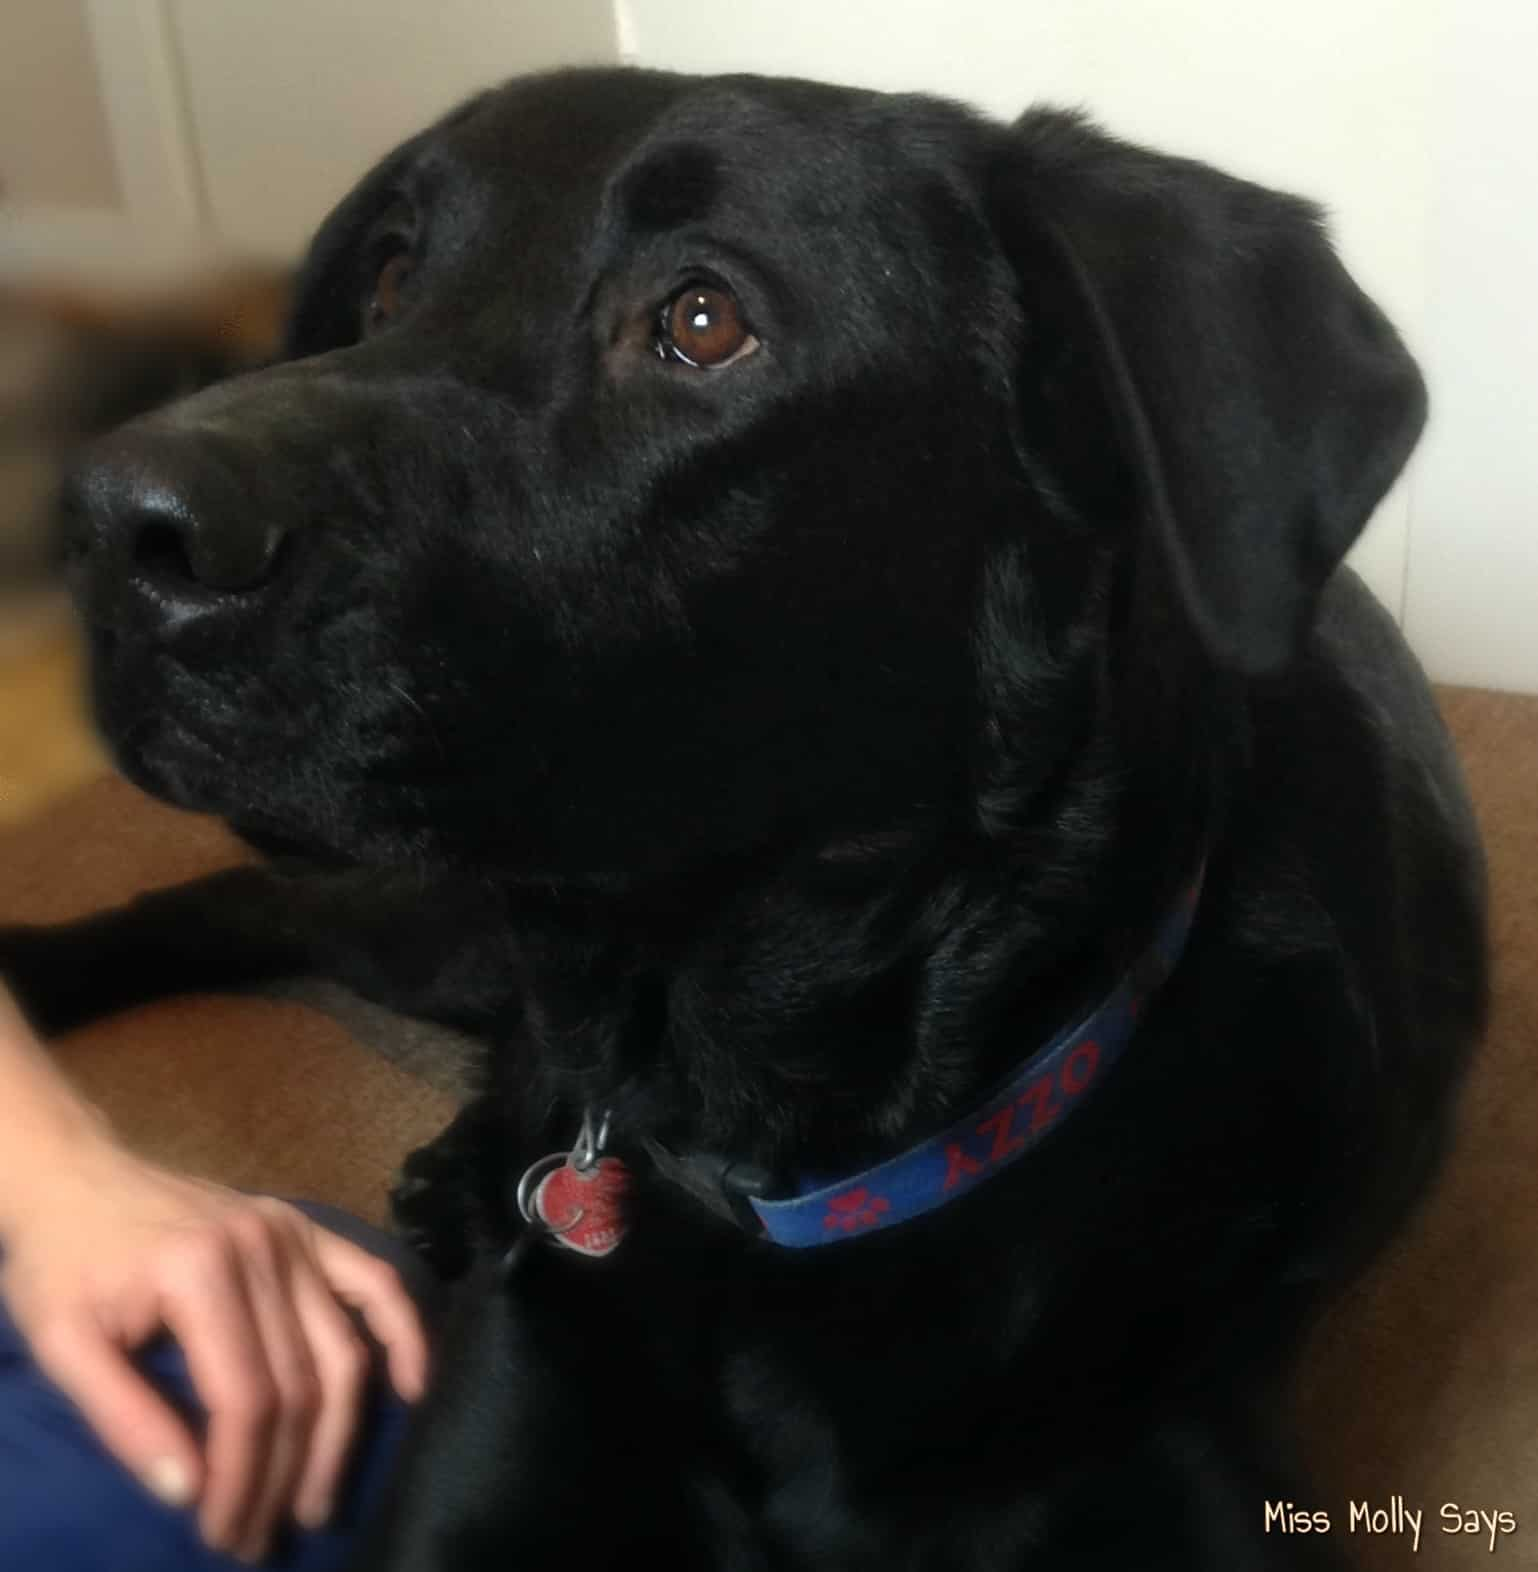 A Hero in the Form of a Big Black Dog #MyPetisMyHero